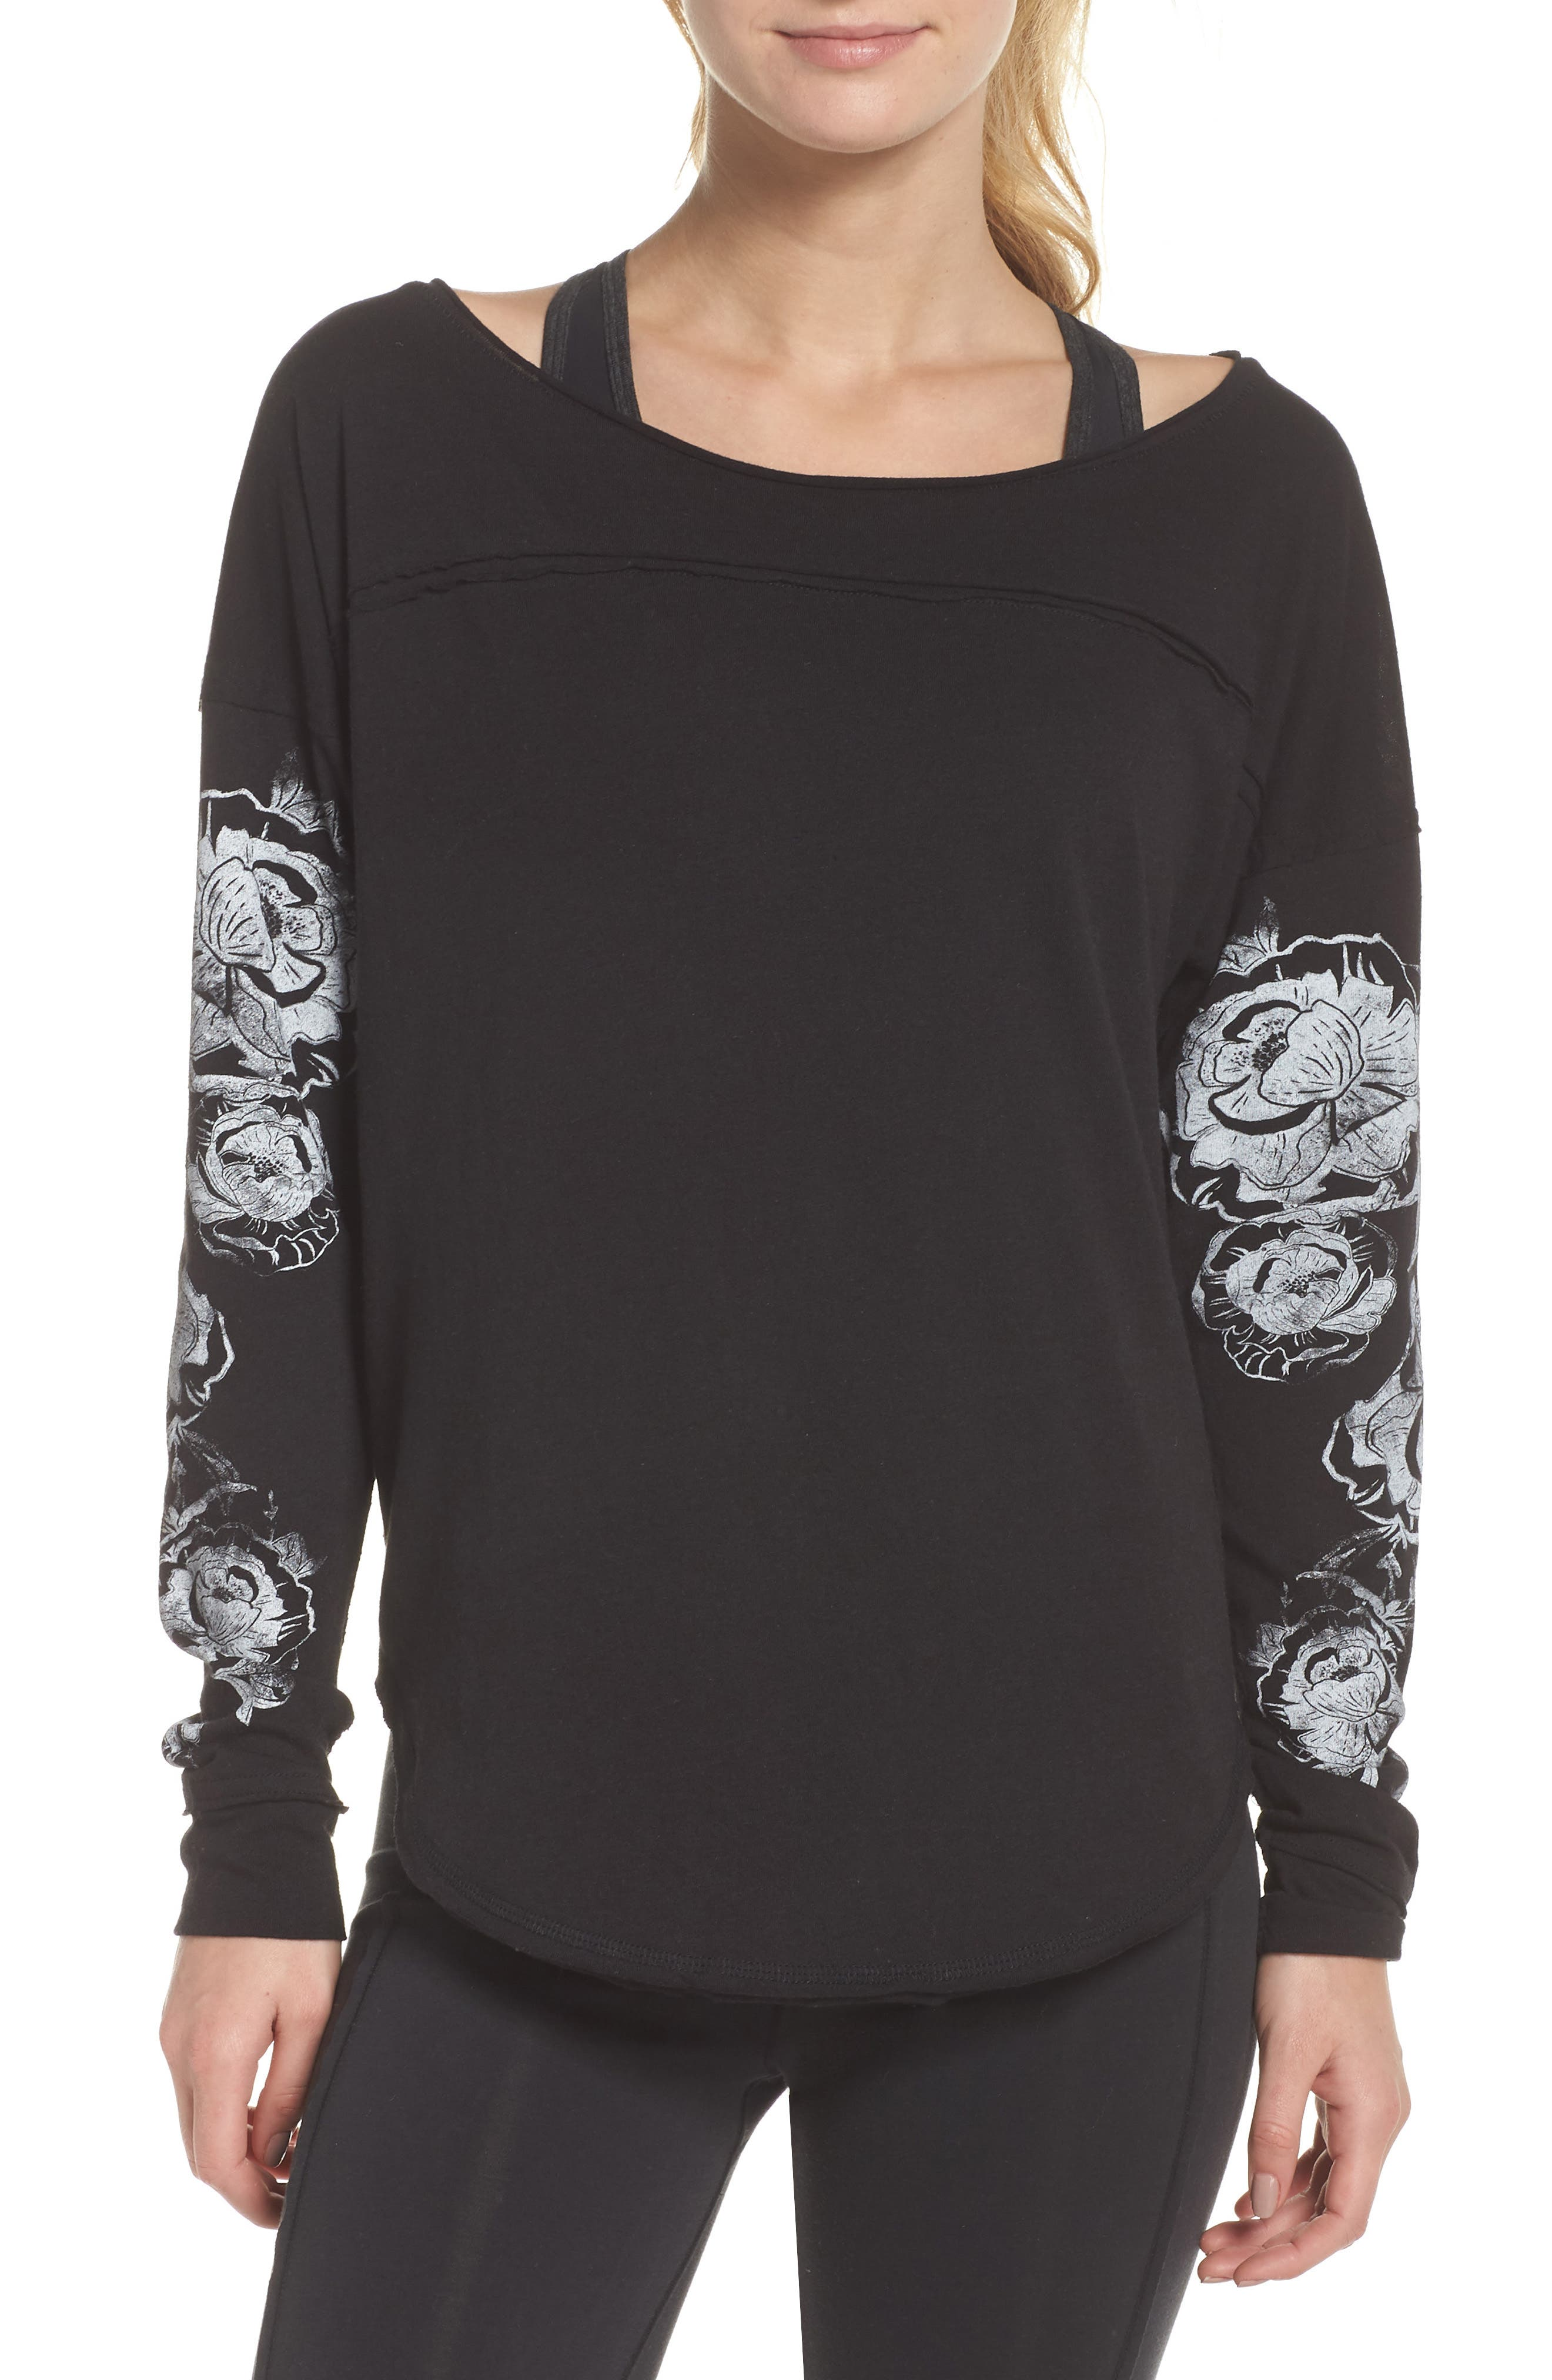 Dance Graphic Tee,                         Main,                         color, 001